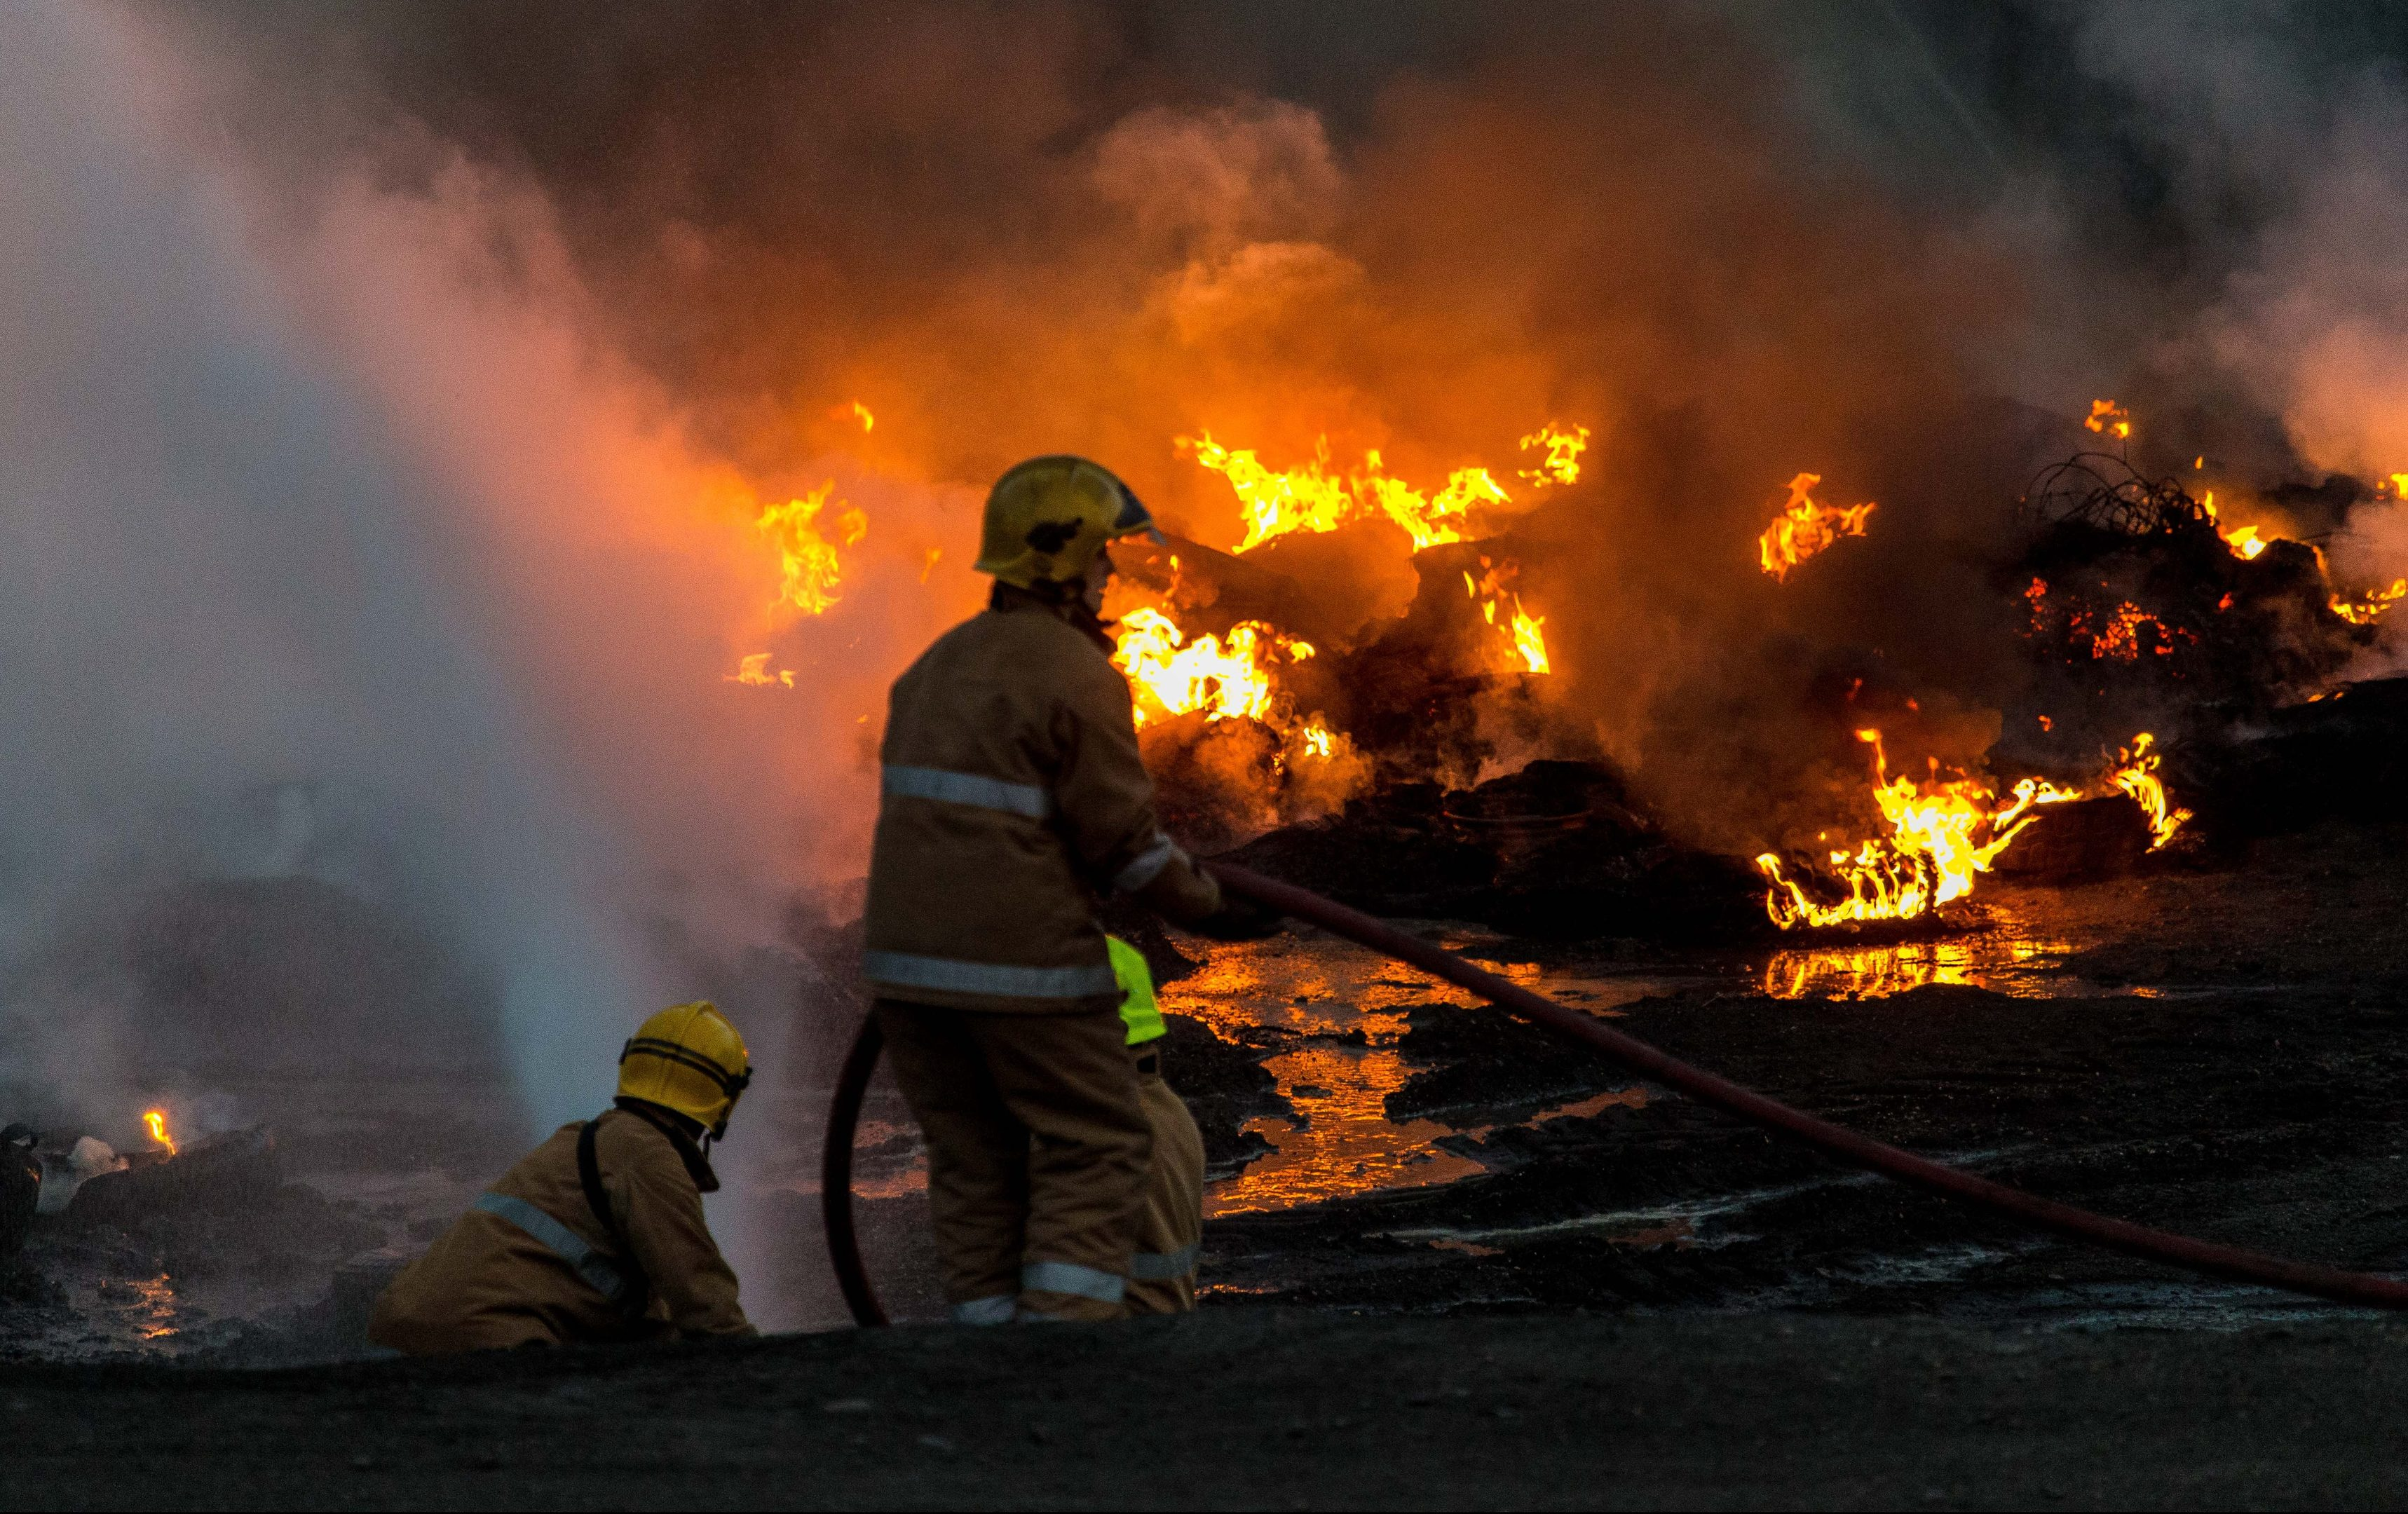 Firefighters tackled a huge tyre fire in Coaltown of Balgonie Bing in Fife earlier this year. But fears have been raised that a lack of standby cover could potentially cost lives.